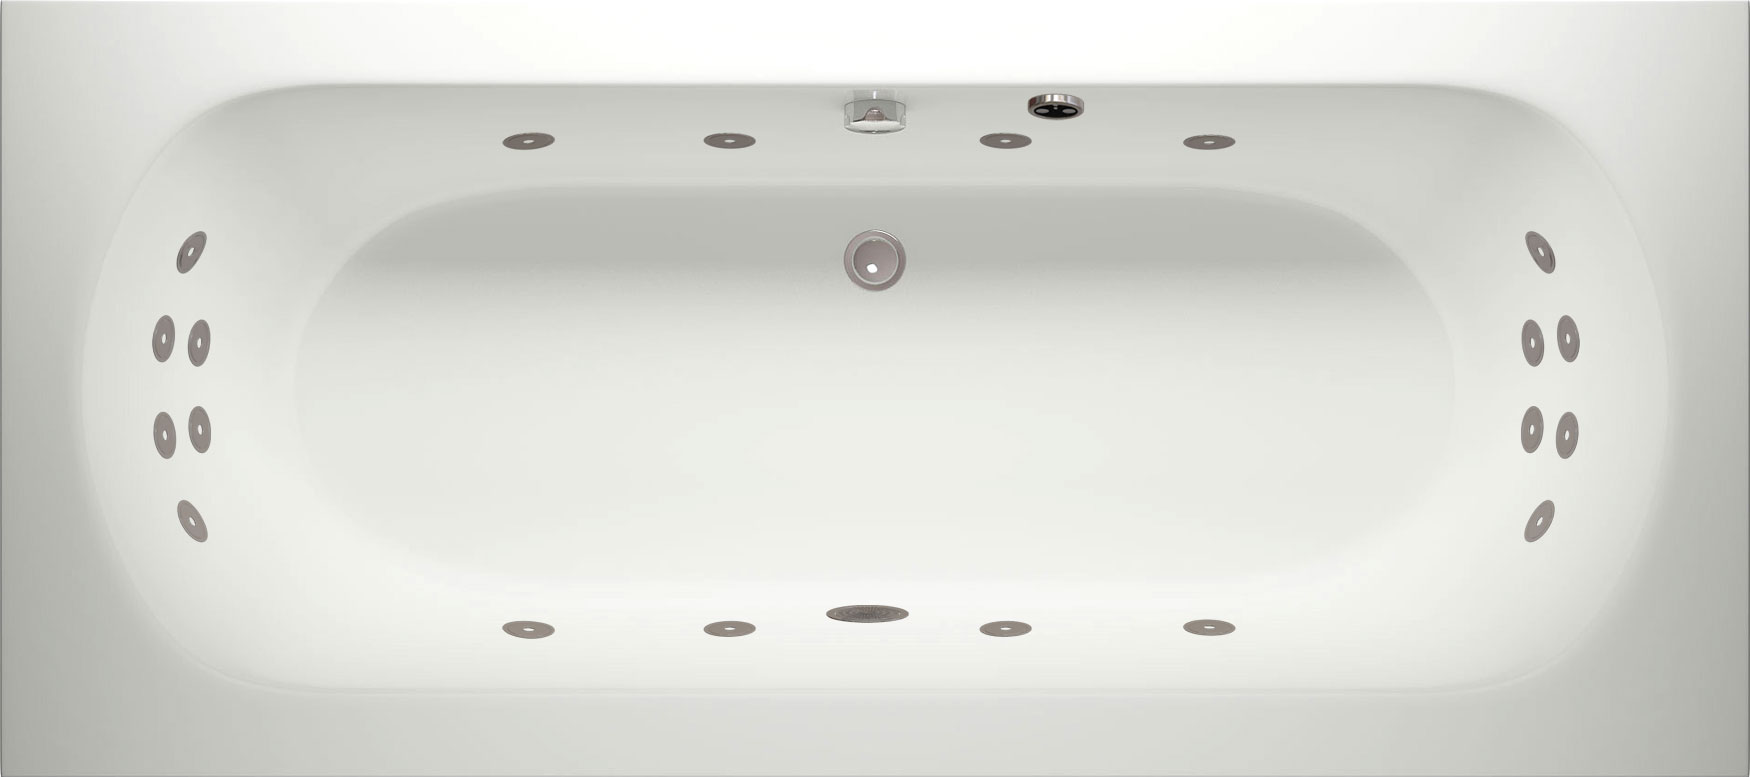 Tamar Super Lux Whirlpool Bath with LED Lights | Luna Spas